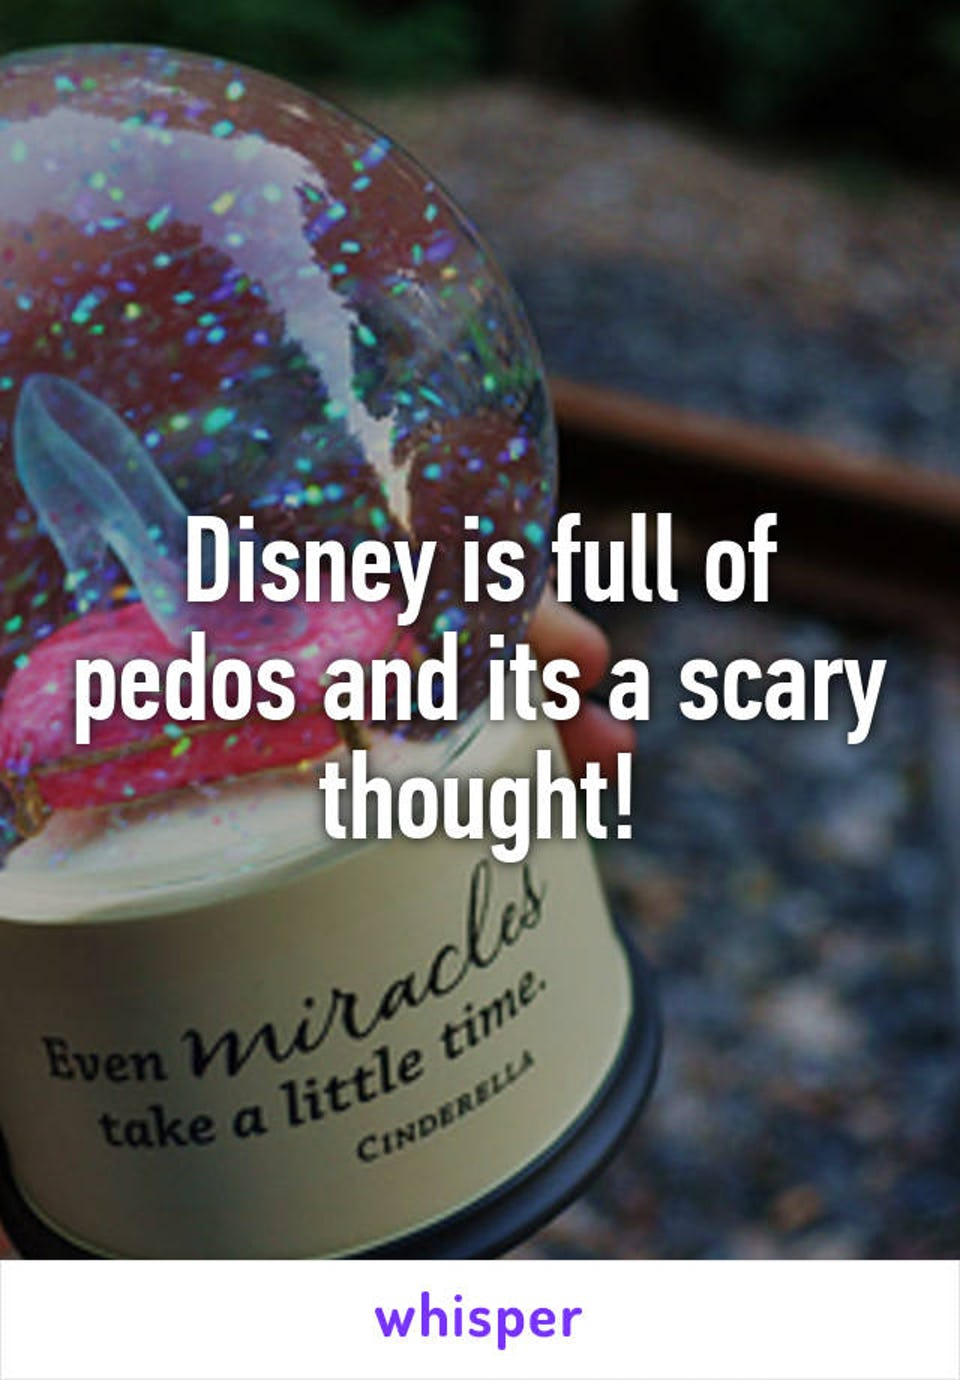 Disney land is full of children and laughter